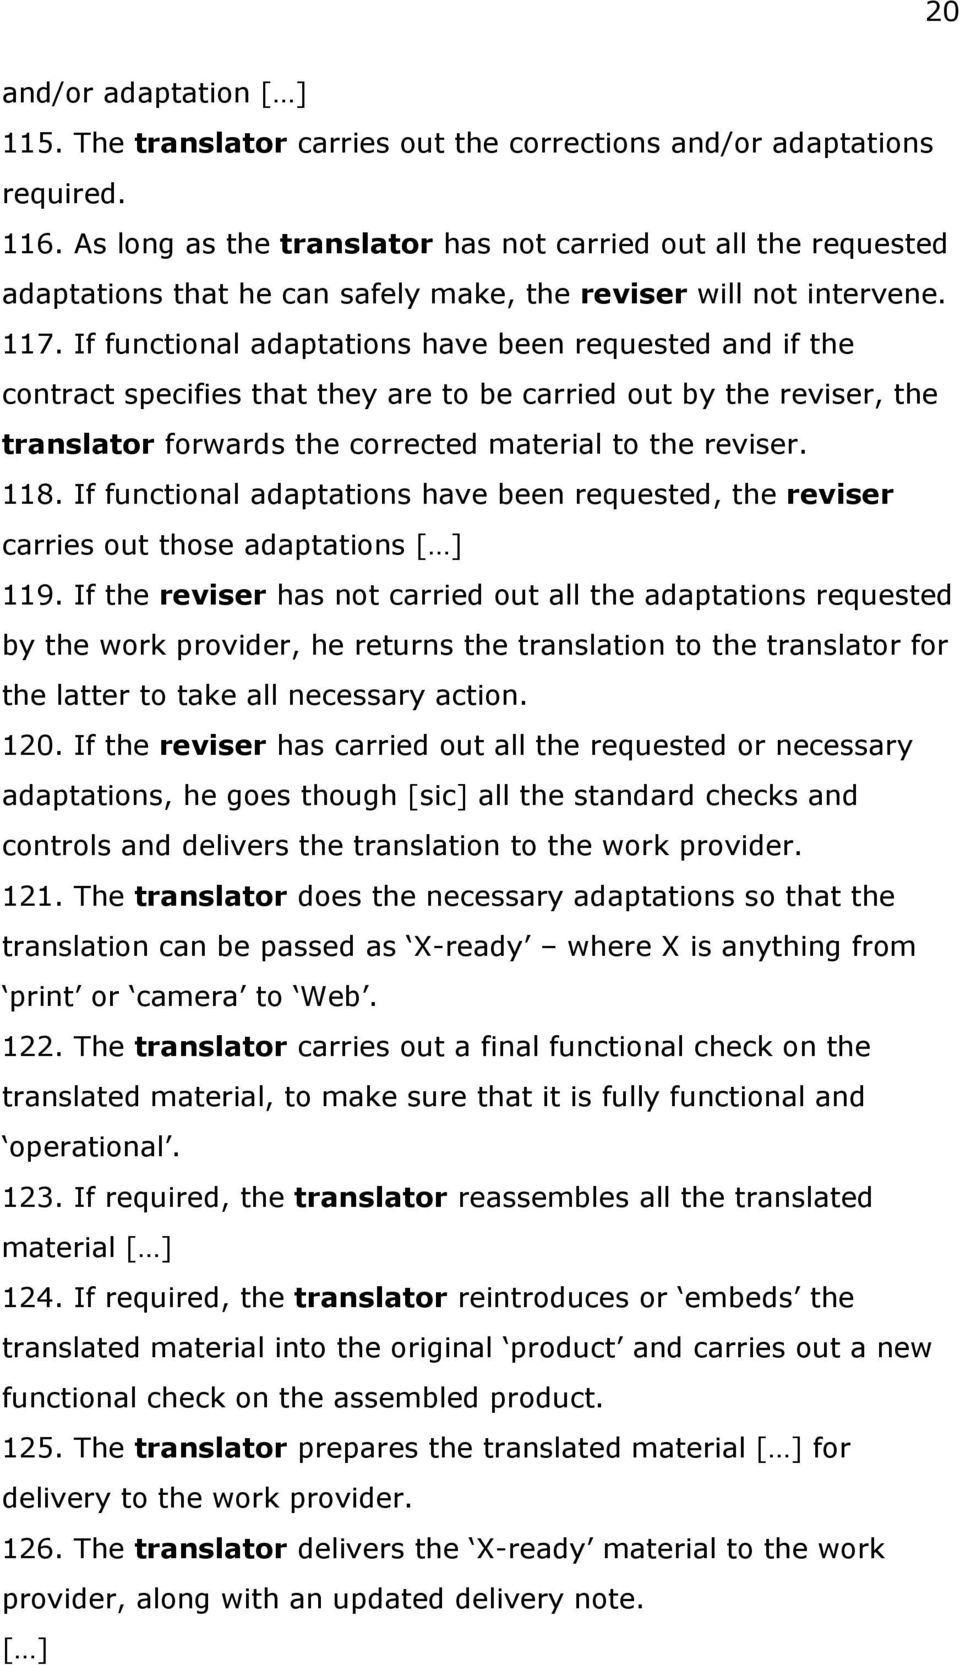 If functional adaptations have been requested and if the contract specifies that they are to be carried out by the reviser, the translator forwards the corrected material to the reviser. 118.